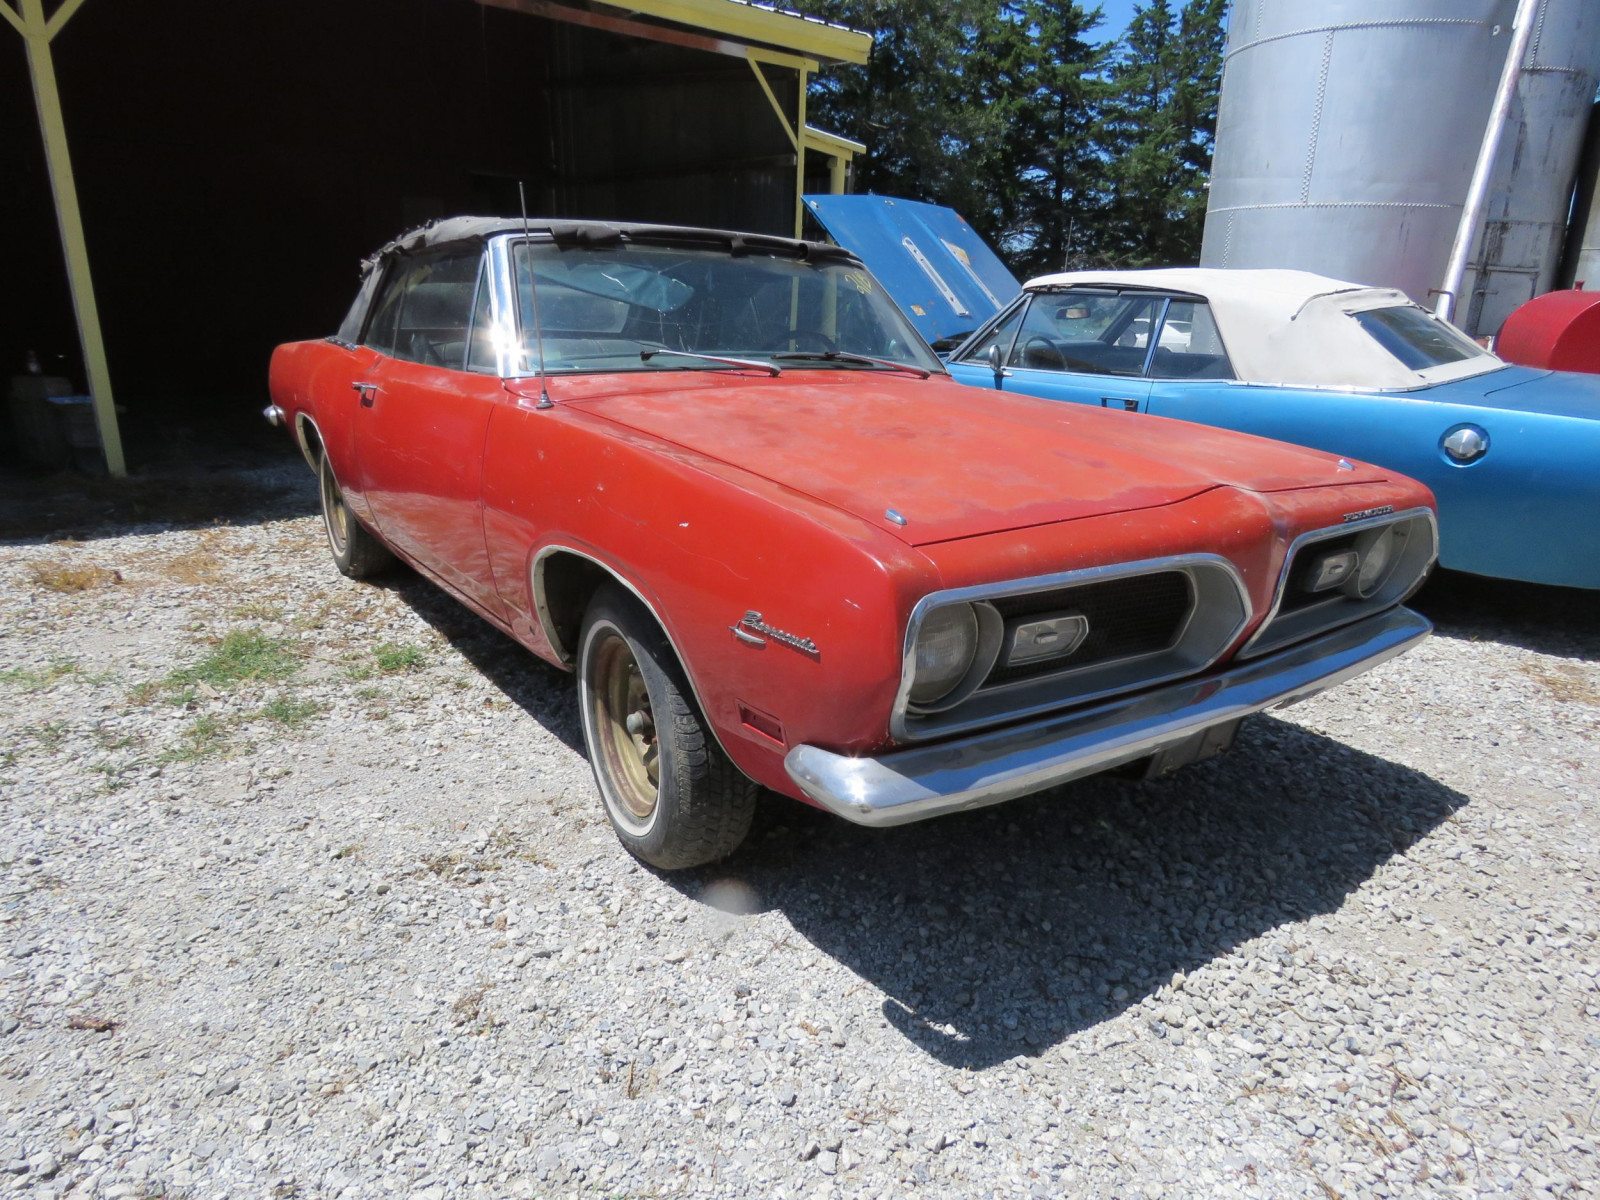 1969 Plymouth Barracuda Convertible - Image 3